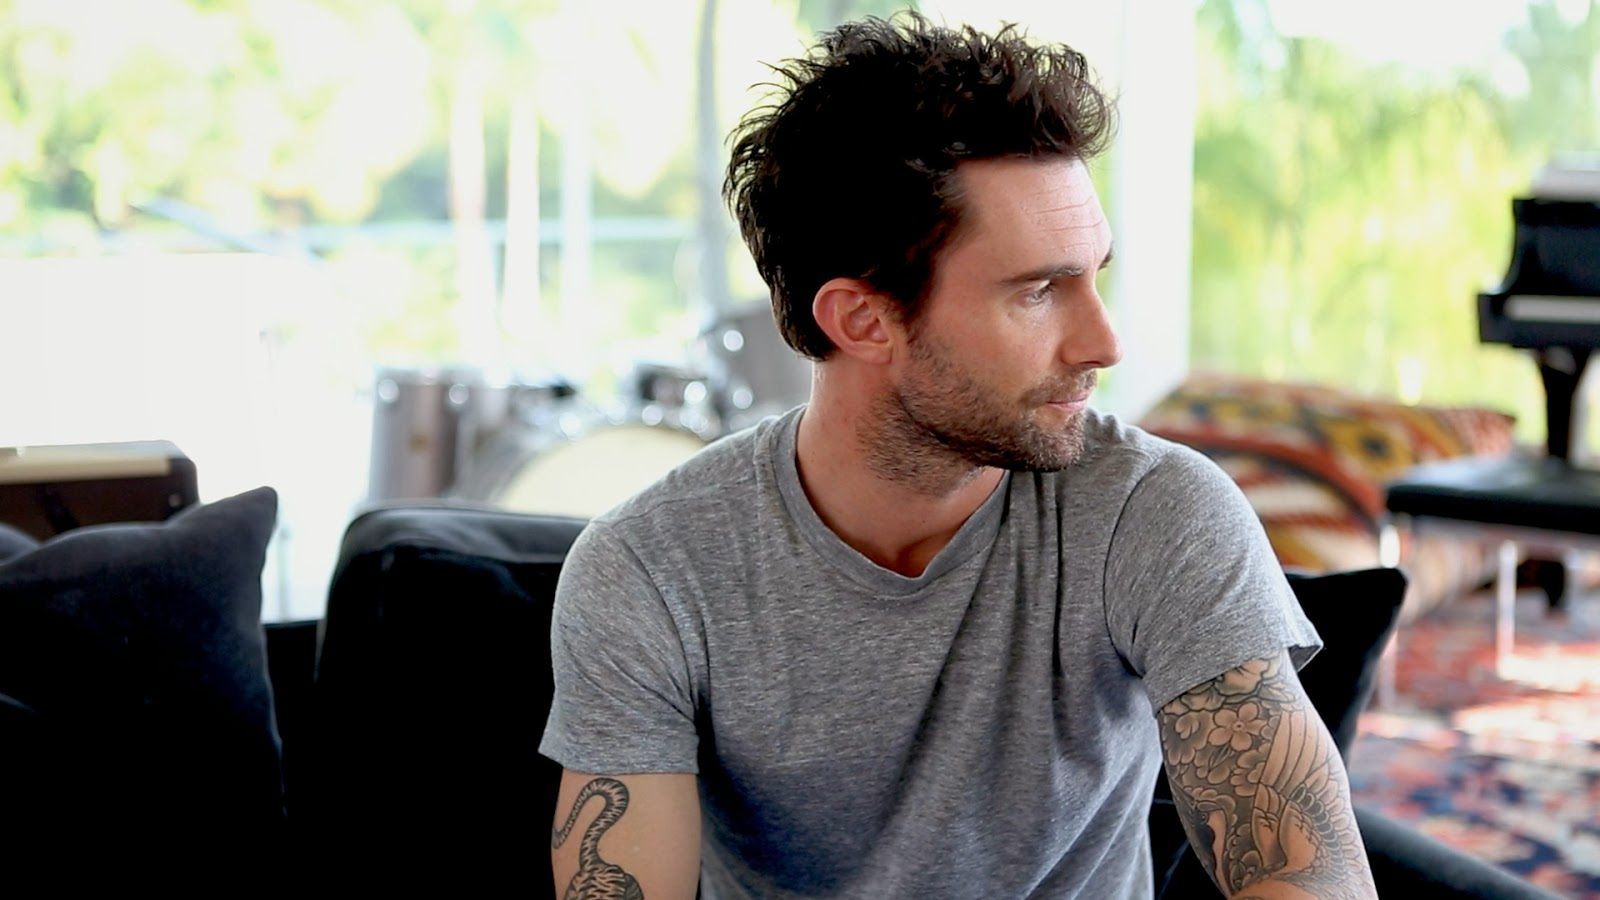 Adam Levine pictures - Stylish HD Wallpaper